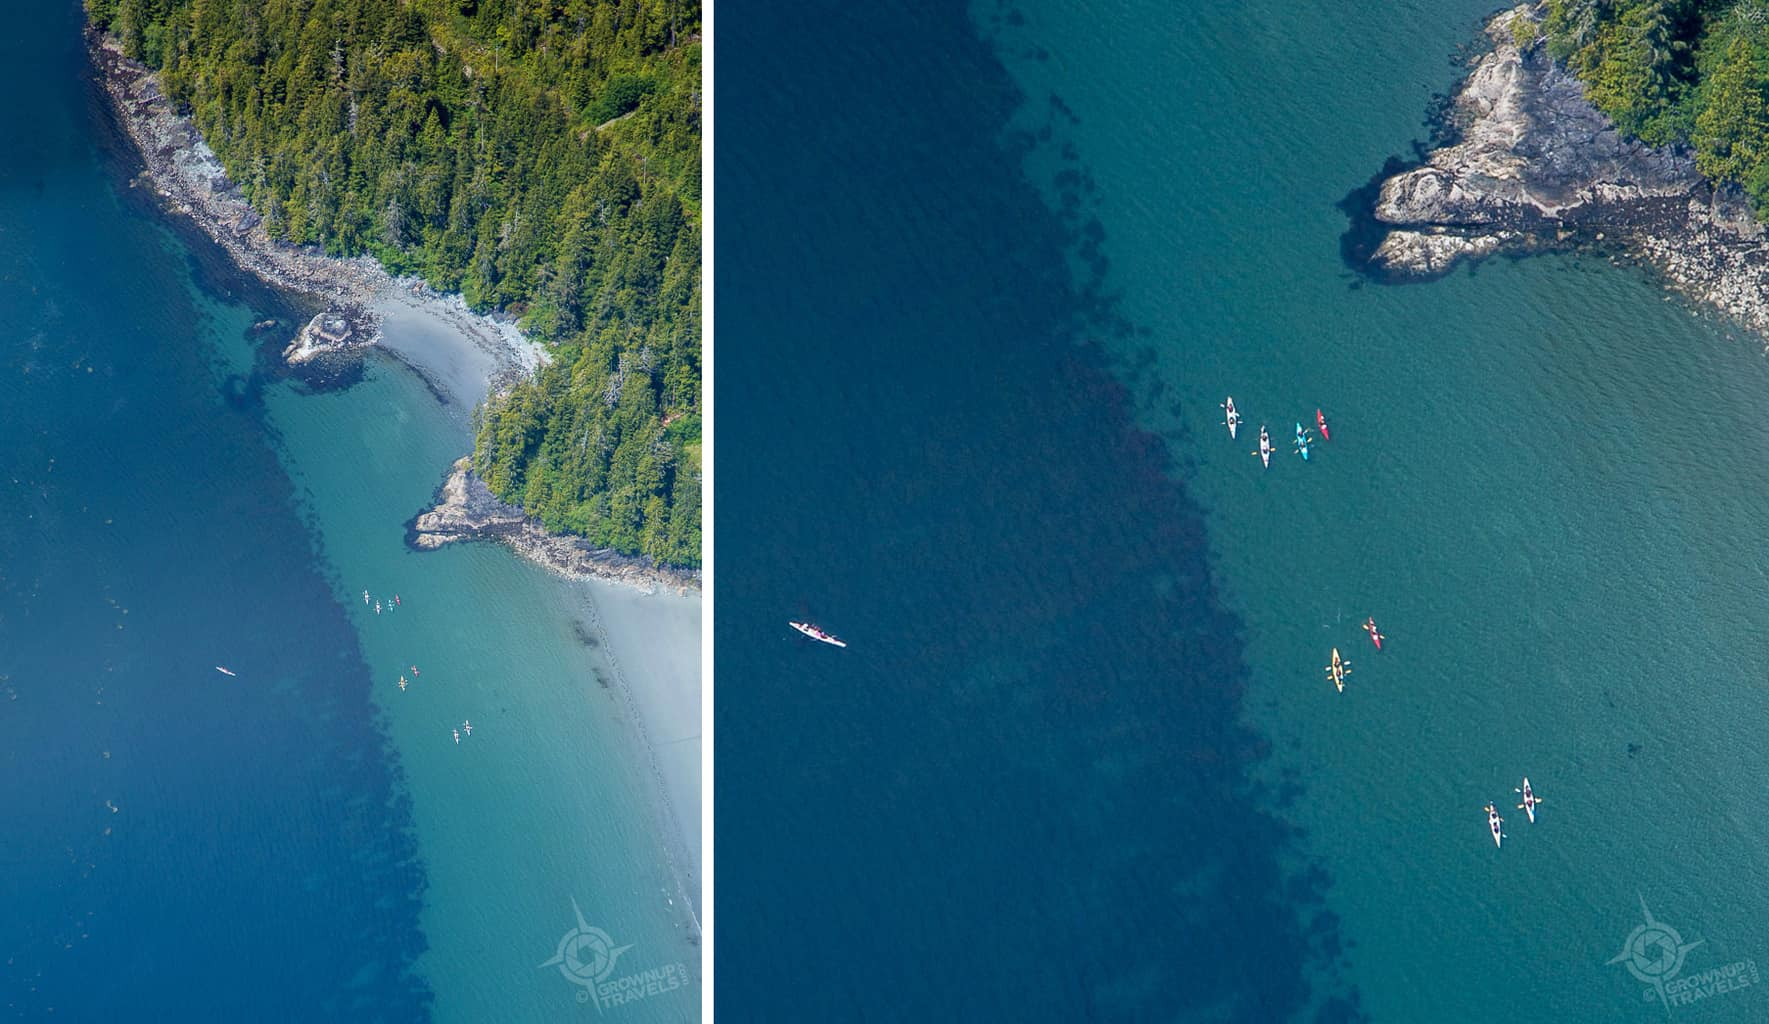 Aerial view of kayakers near Tofino